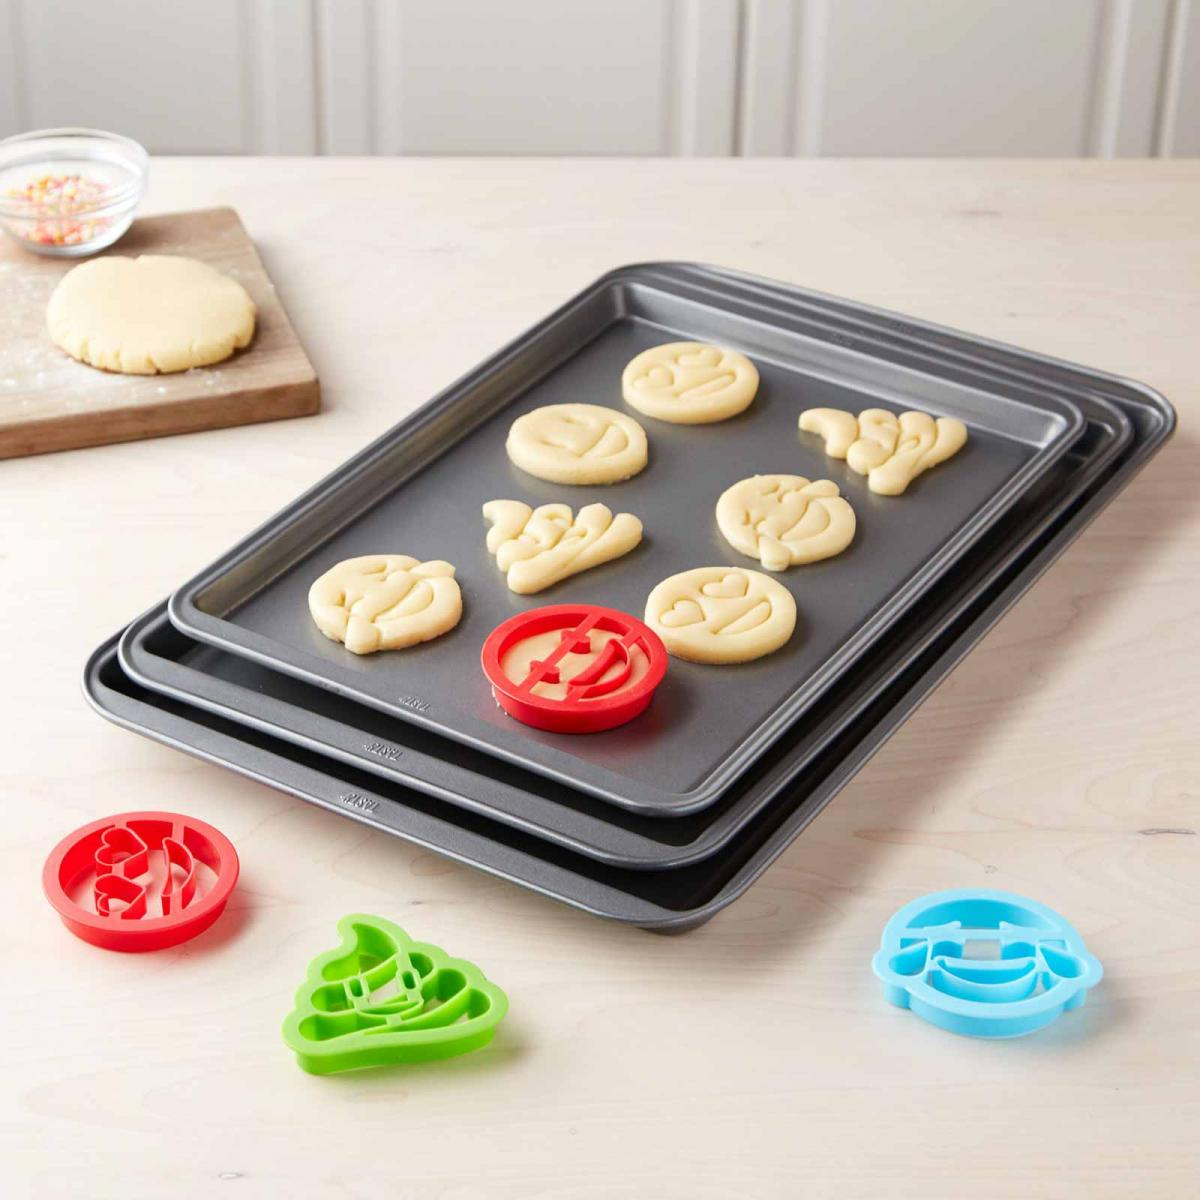 Tasty 3-pc Cookie Sheet Set with 4 Cookie Cutters